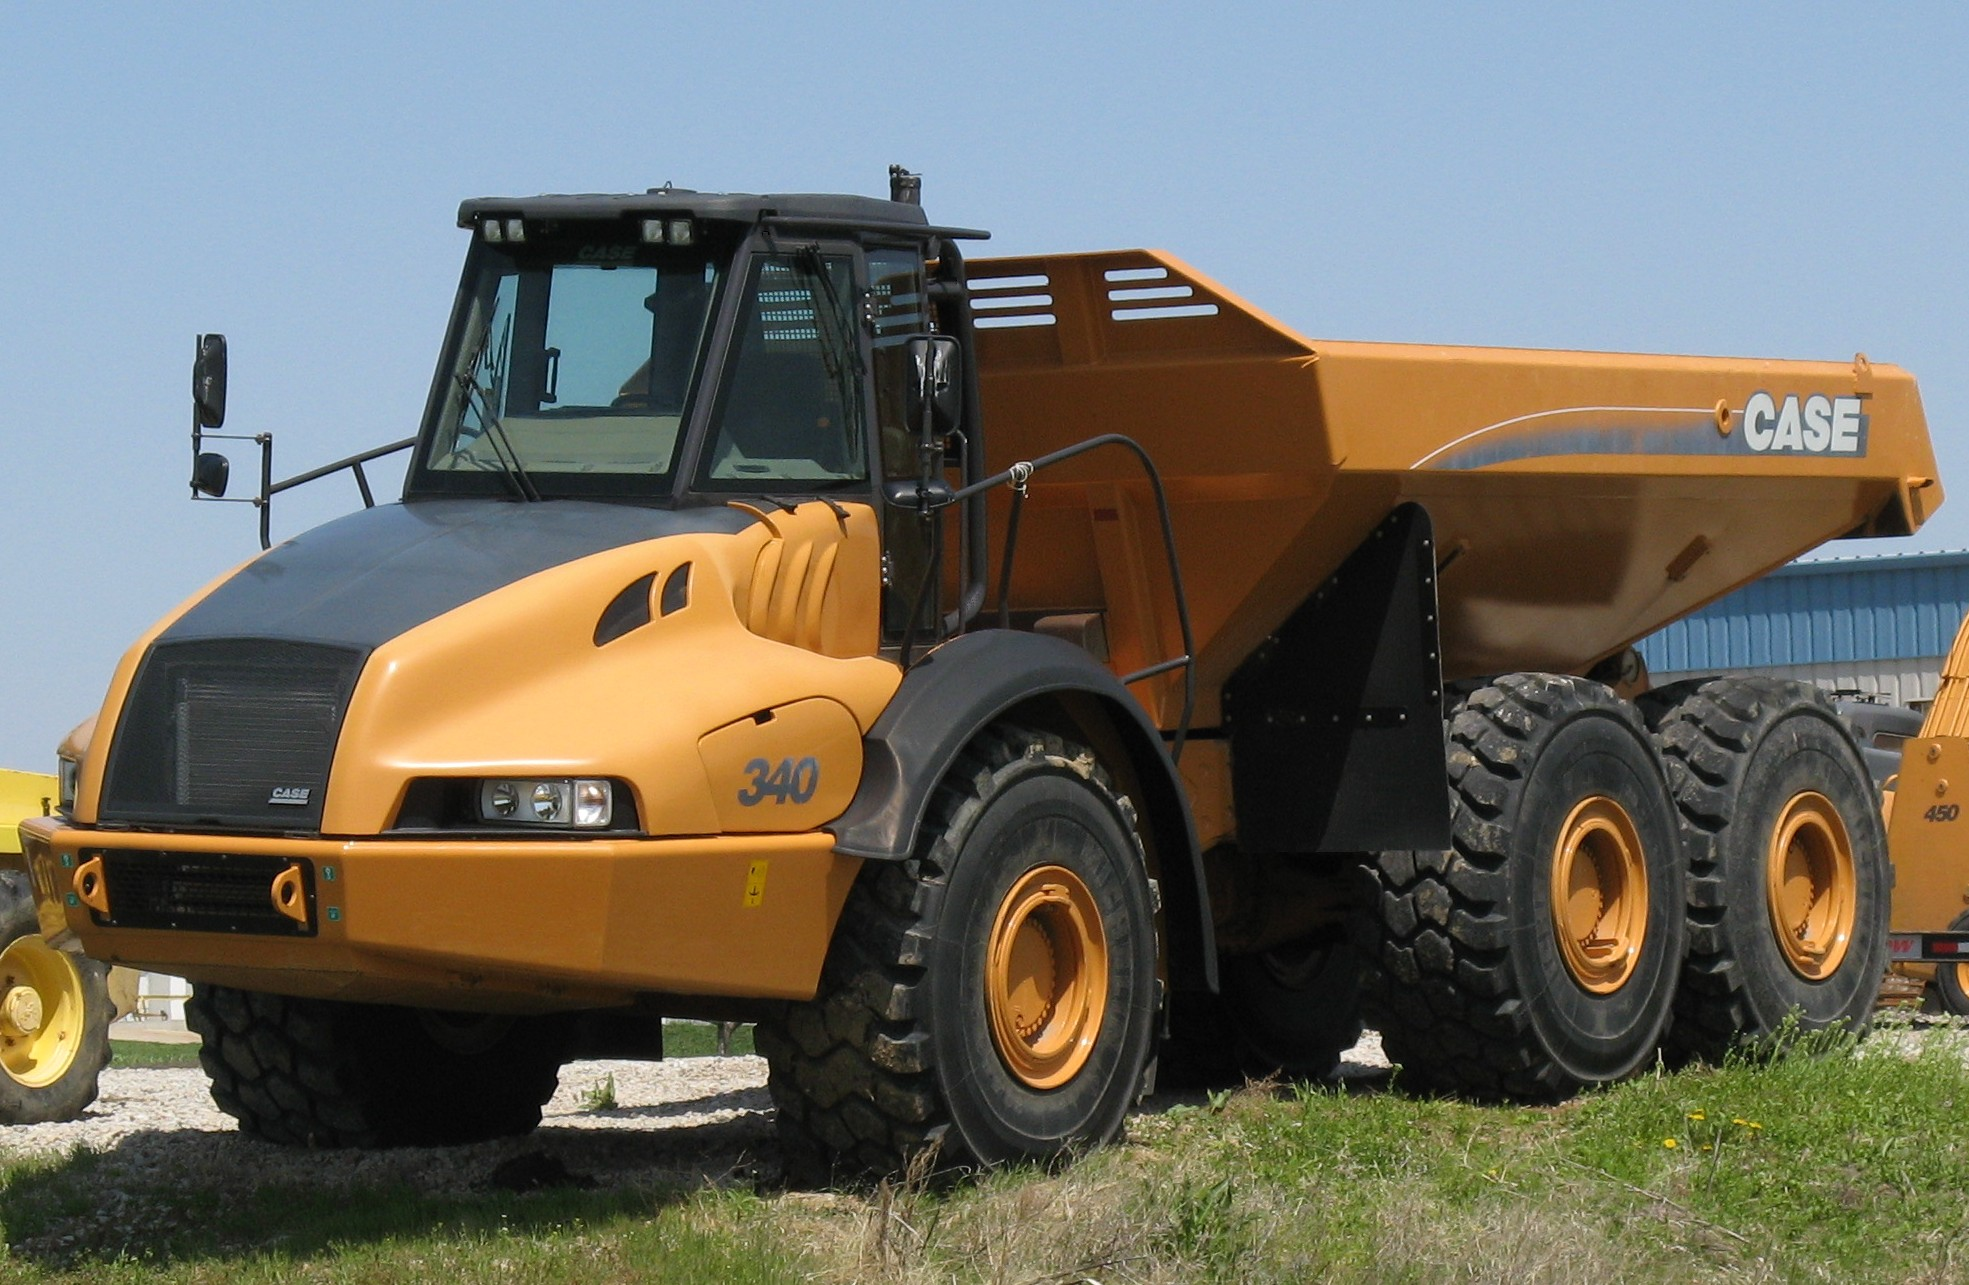 File Case 340 Dump Truck Jpg Wikimedia Commons